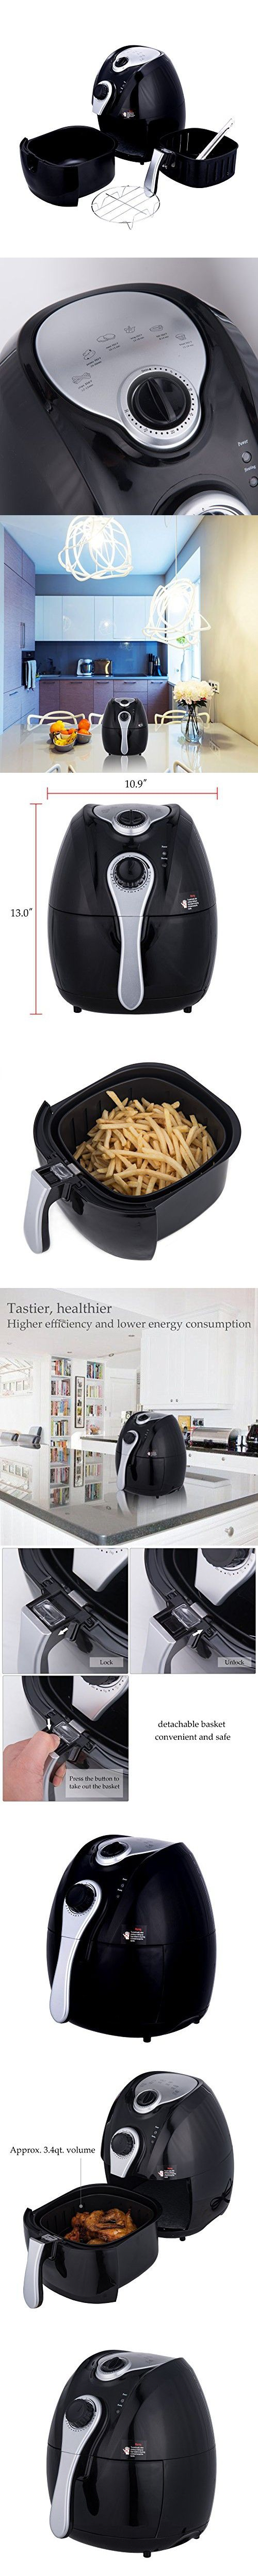 CO-Z 3.4 Quart Electric Air Fryer No Oil/Less Oil with Time & Temperature Control, Rapid Air Circulation System &Detachable Basket (Black Large)